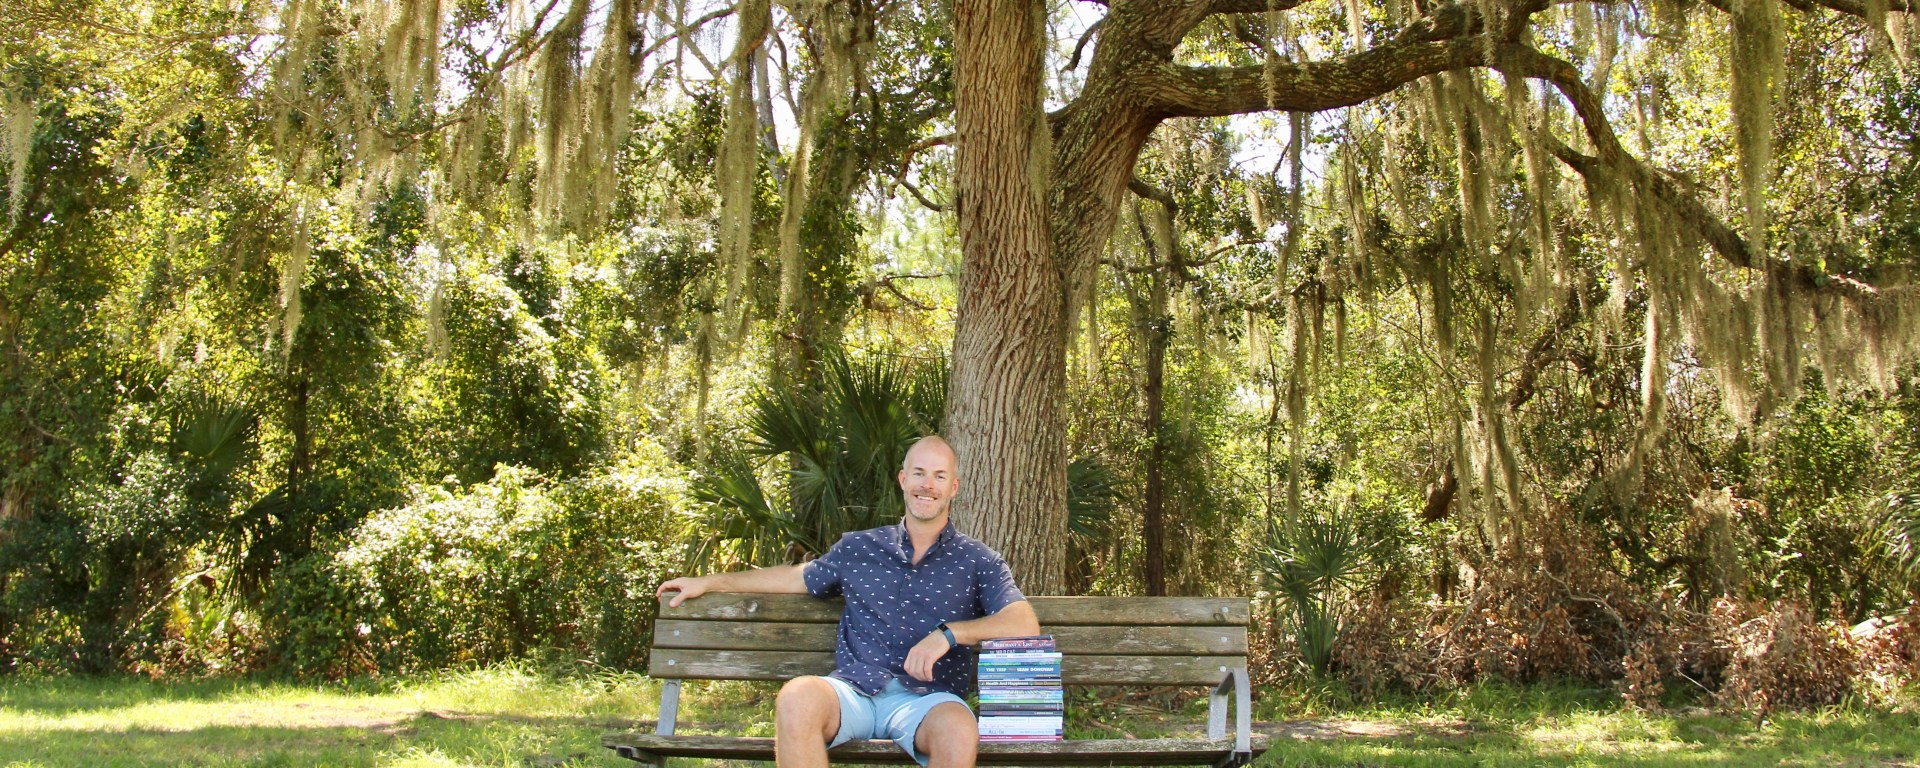 Author, Sean Donavan, sits under tree with stack of published books